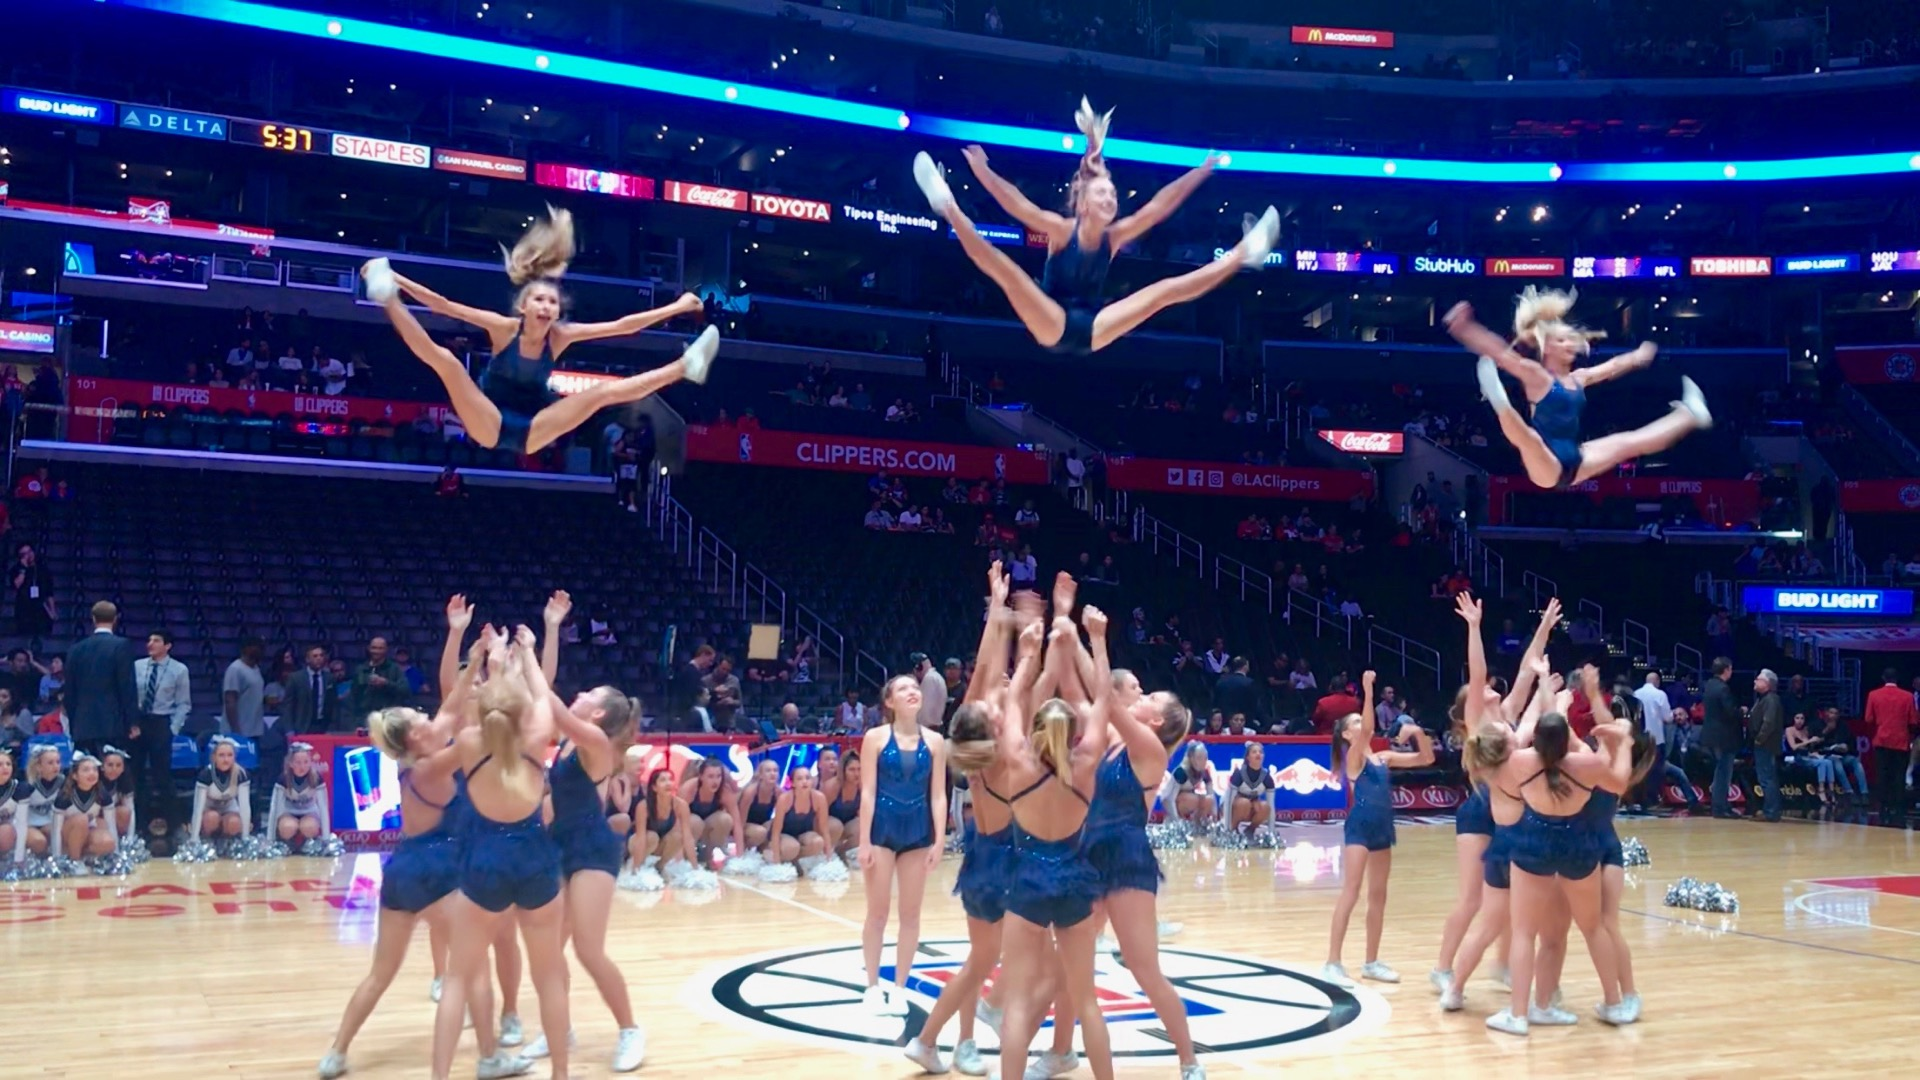 LA Clipper Game Performance!